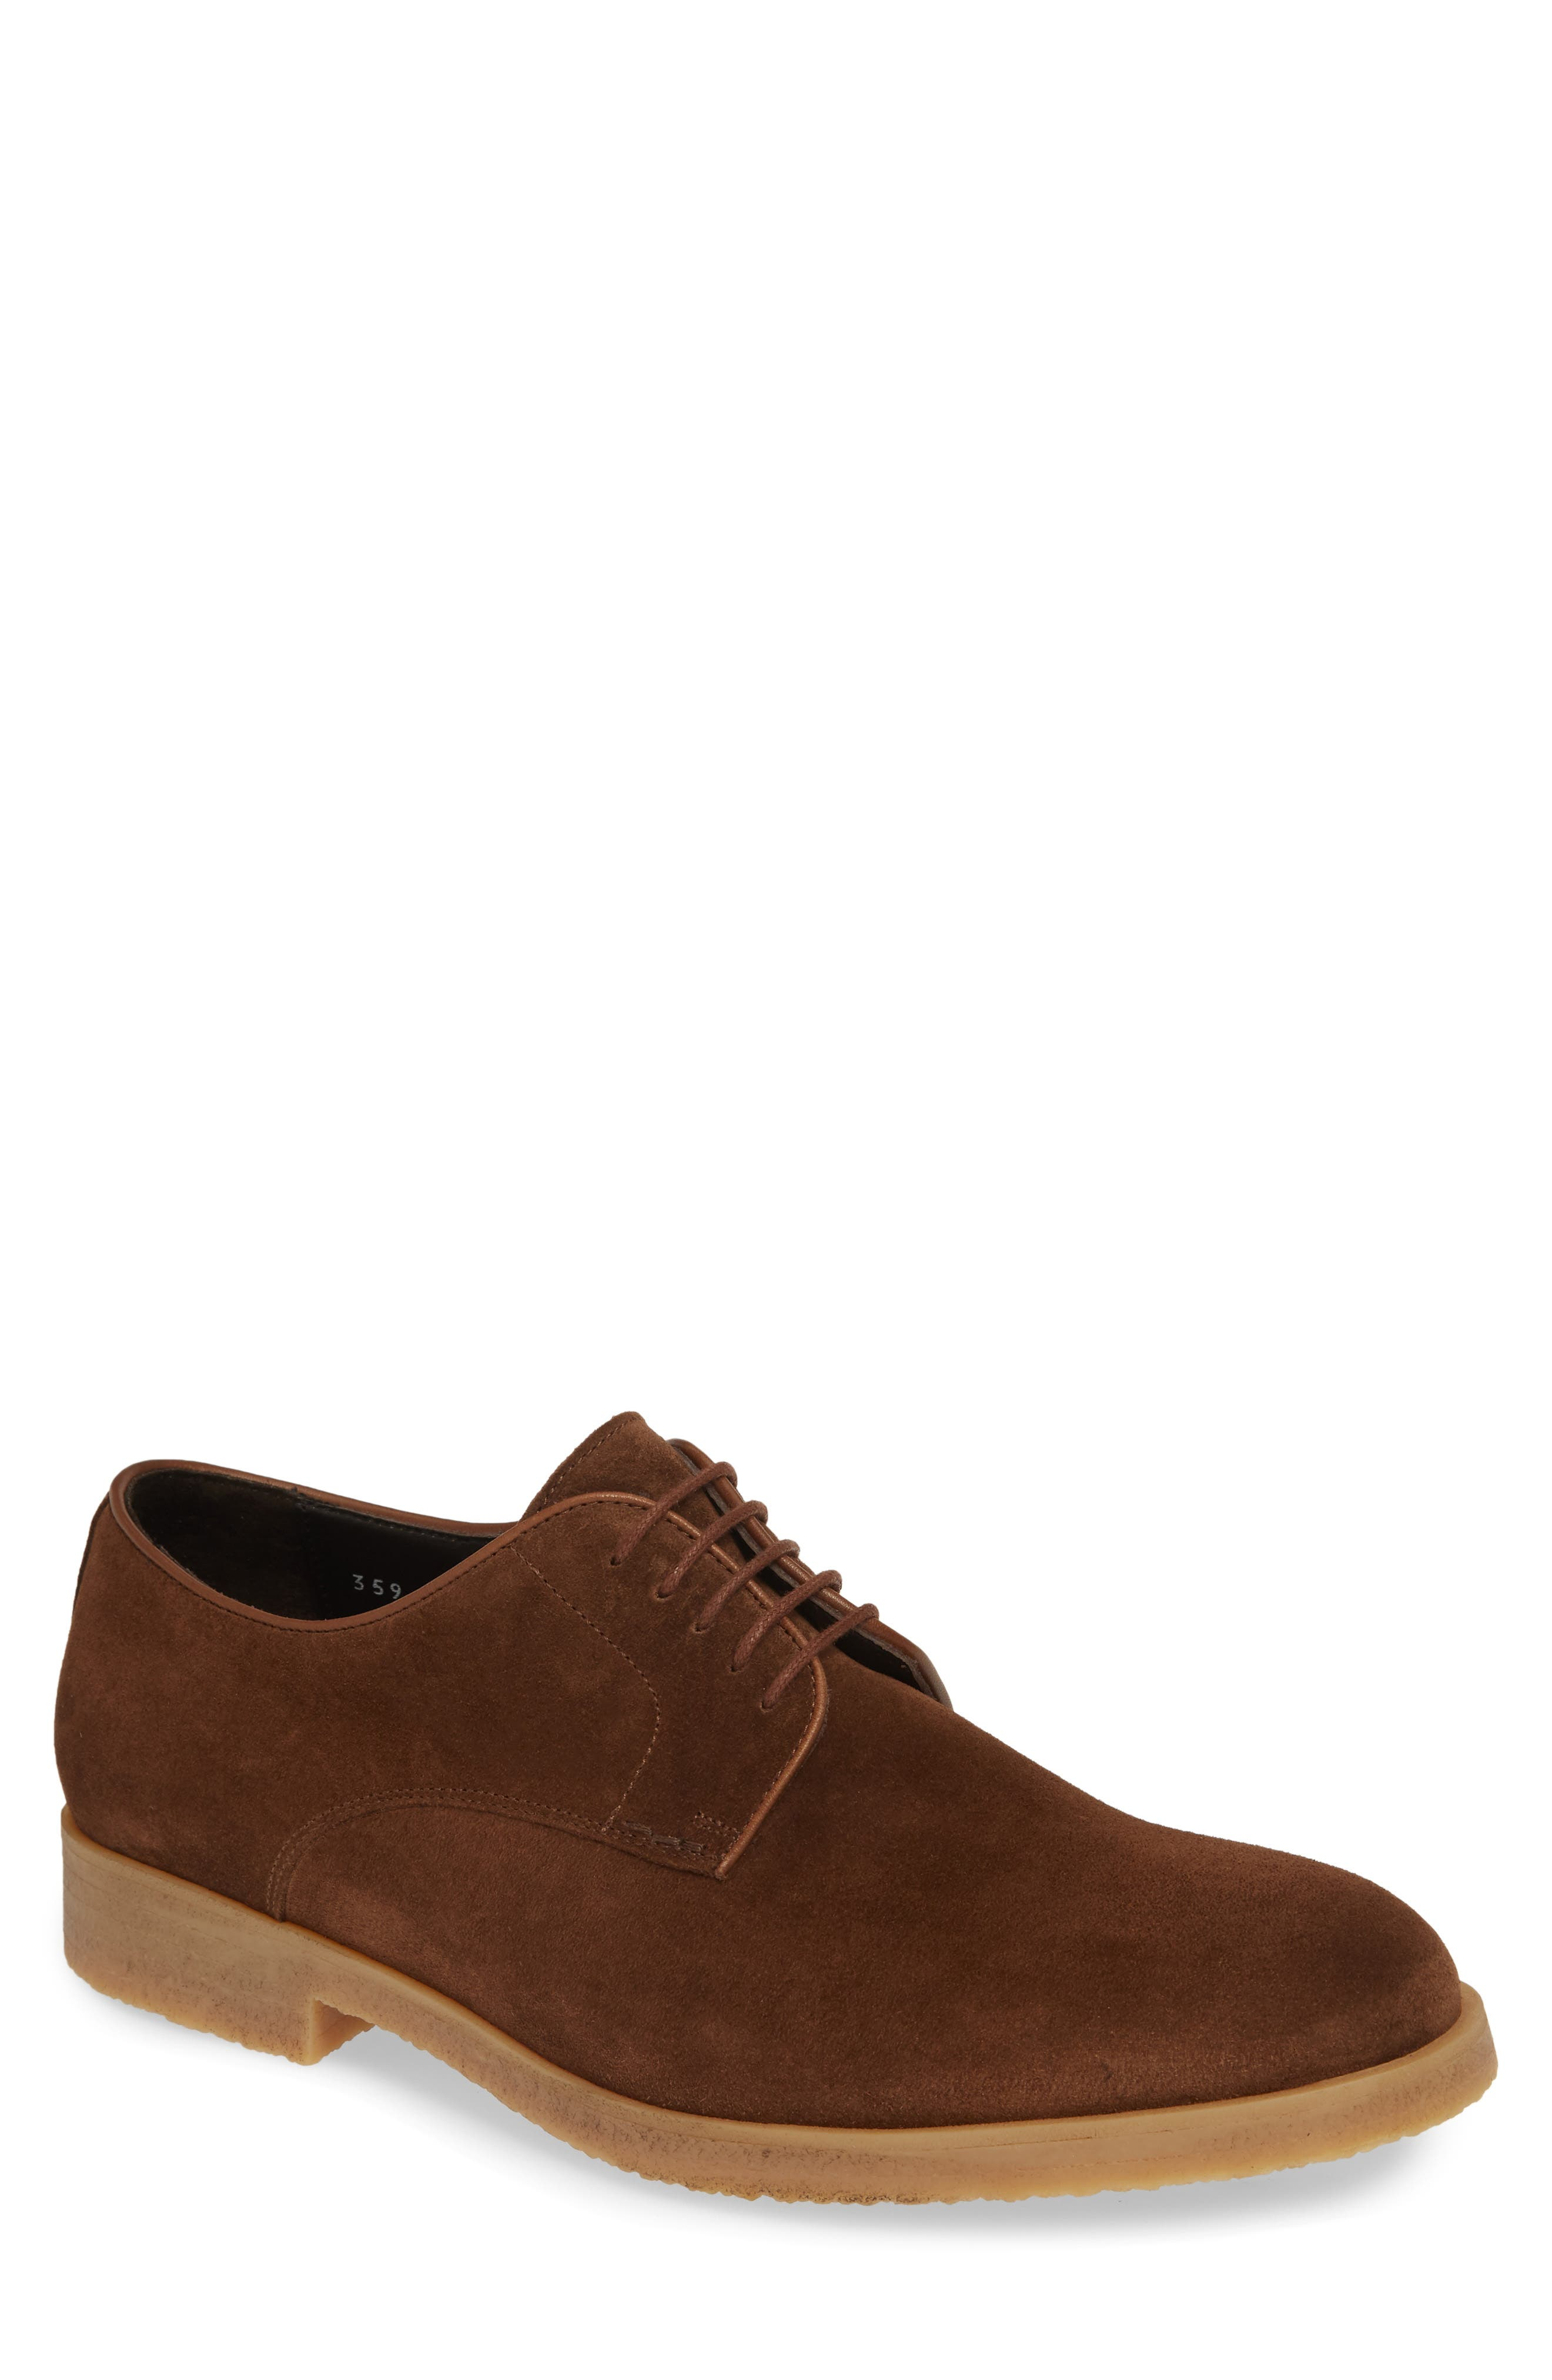 To Boot New York Course Buck Shoe, Brown